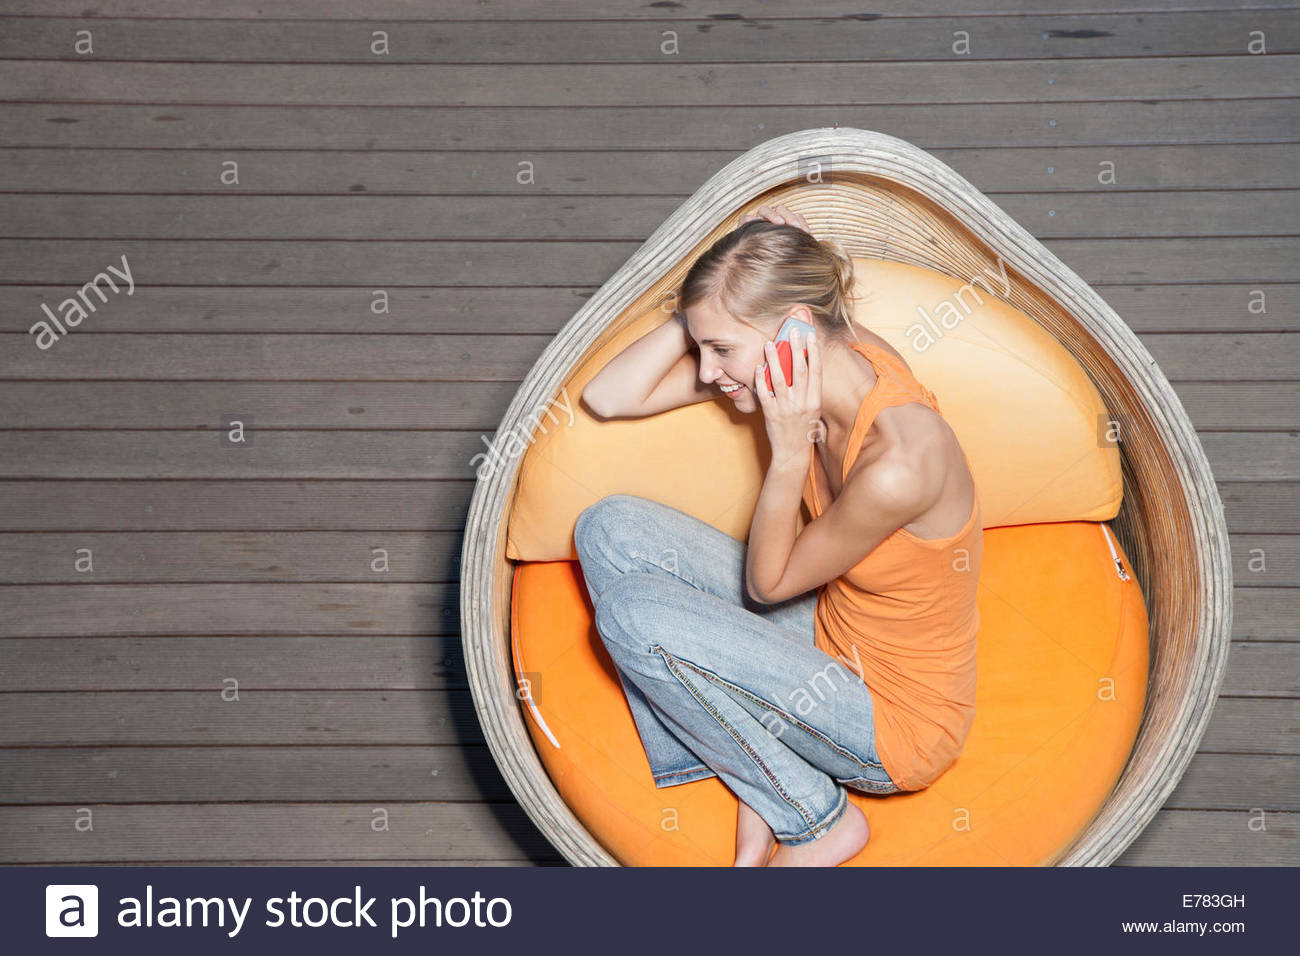 A young woman sitting on a deck on her cellular phone - Stock Image